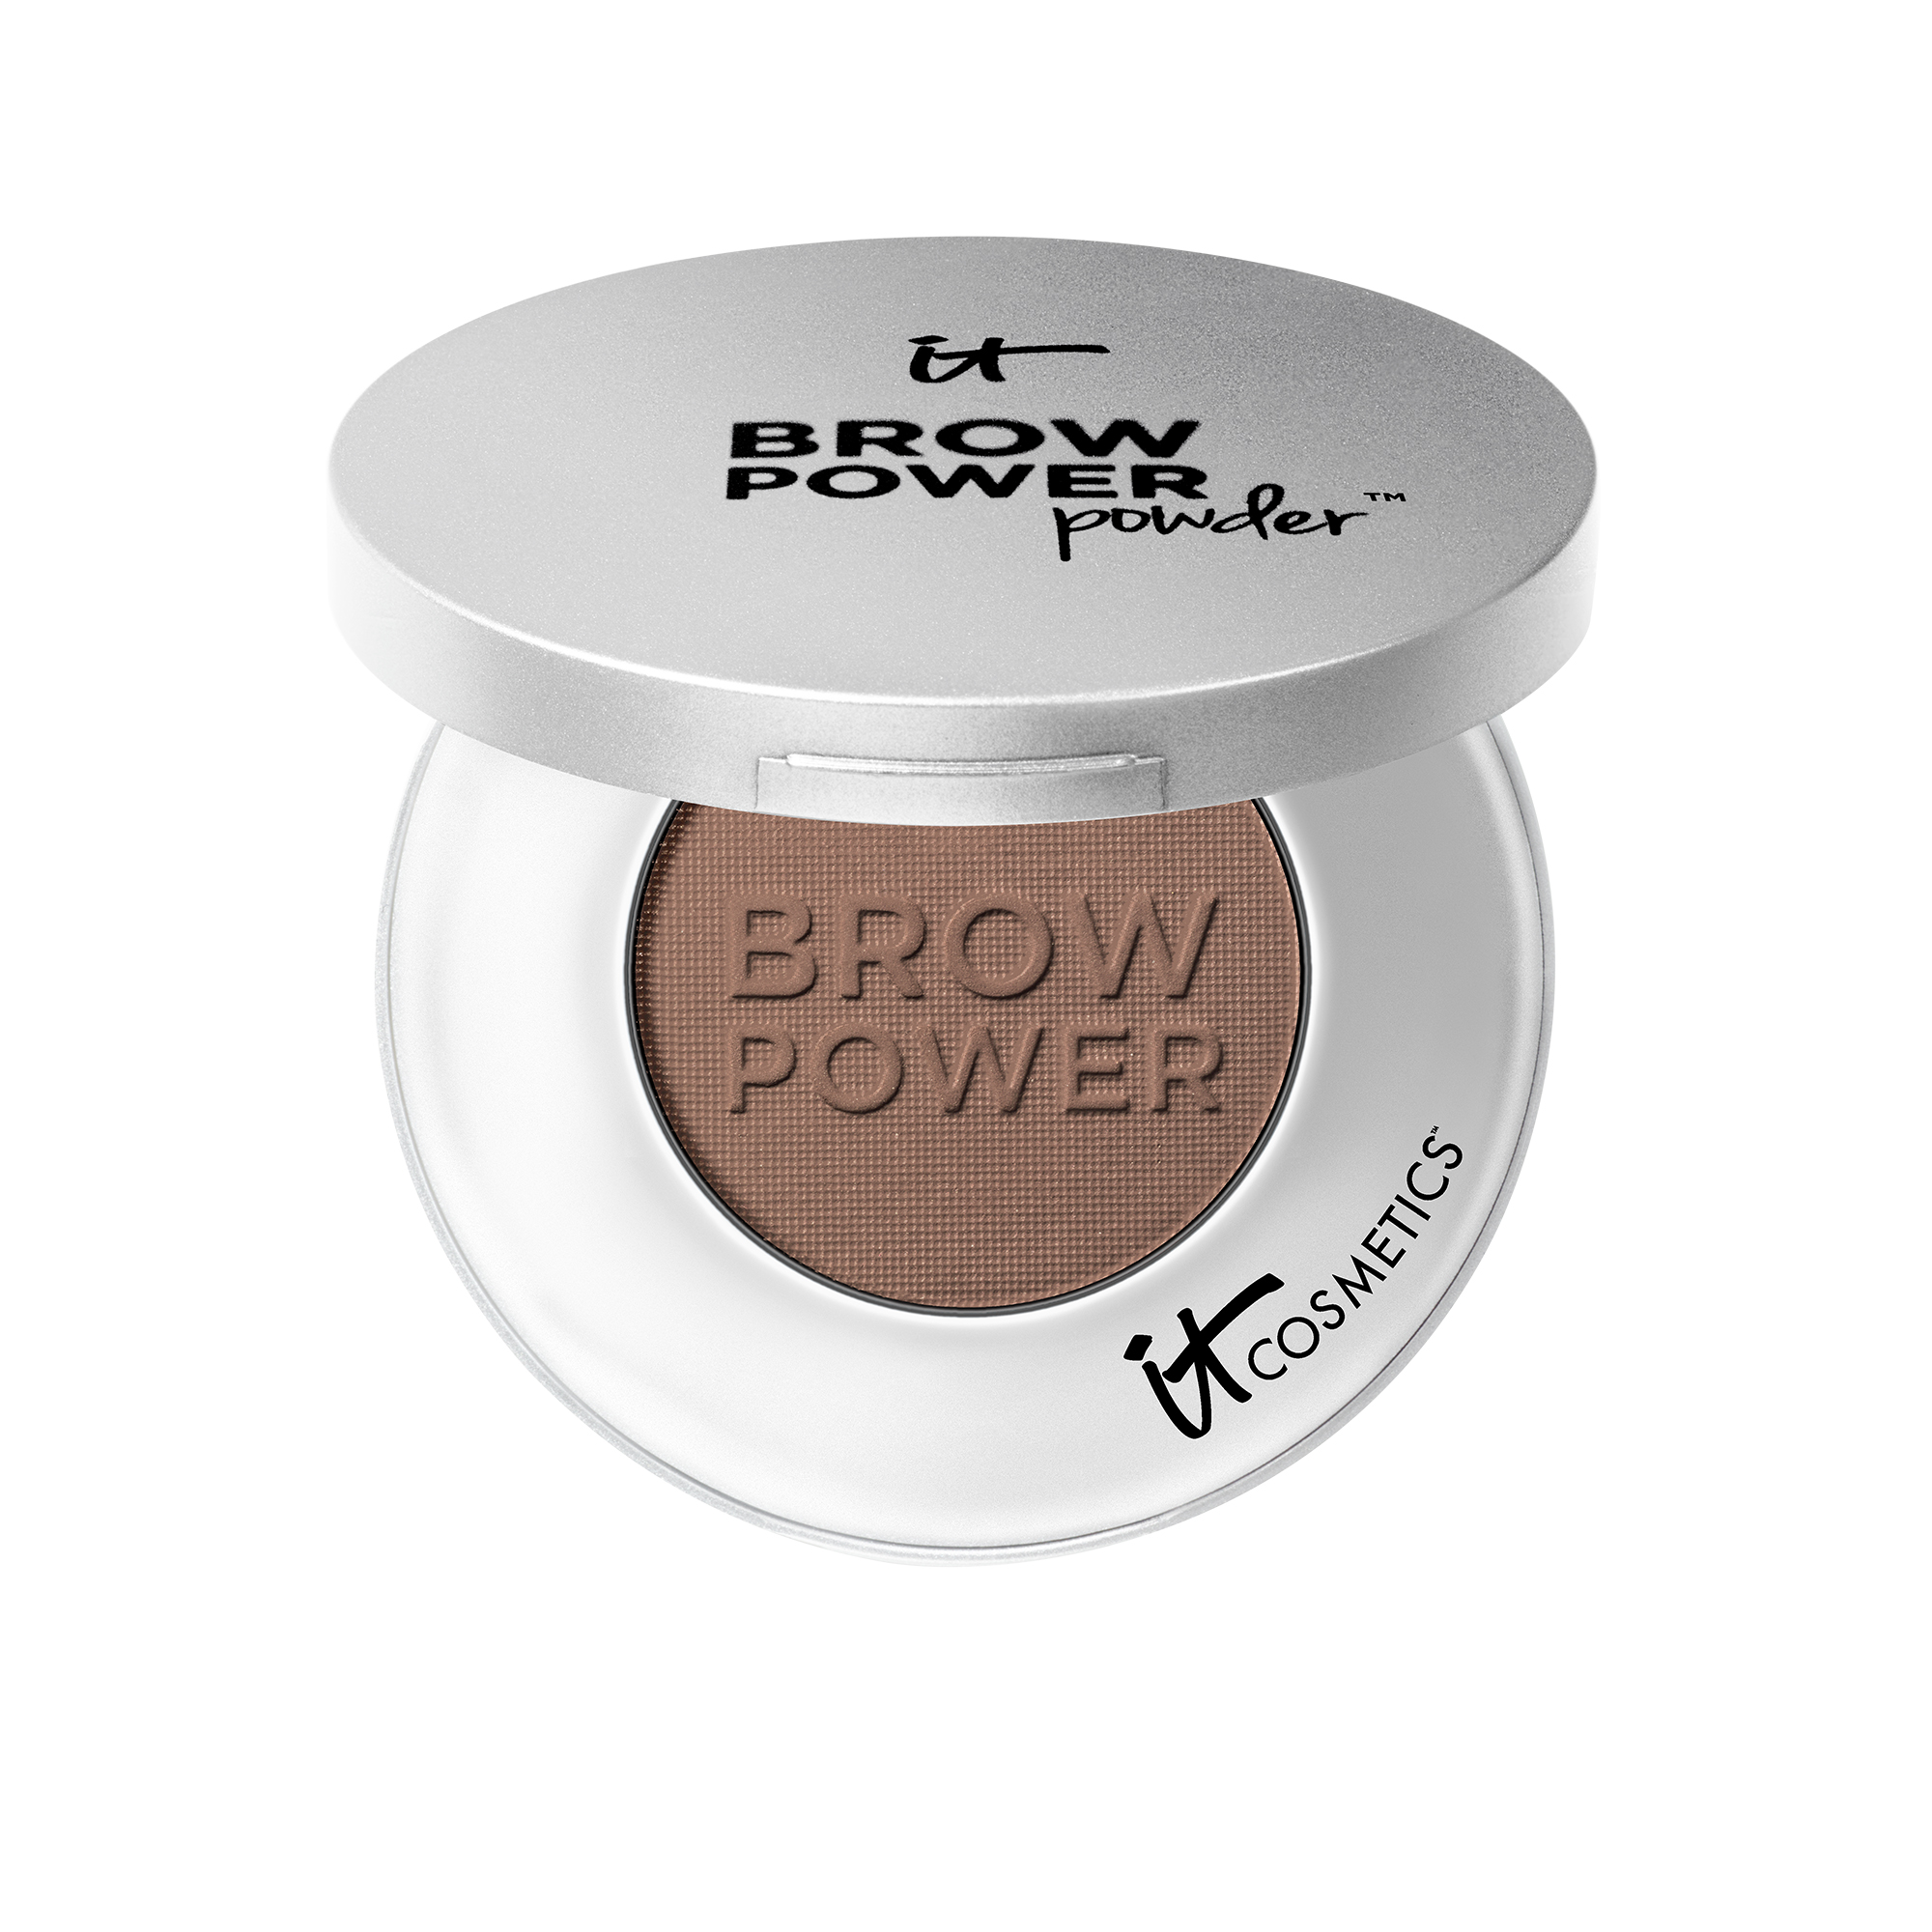 Brow Power™ Powder